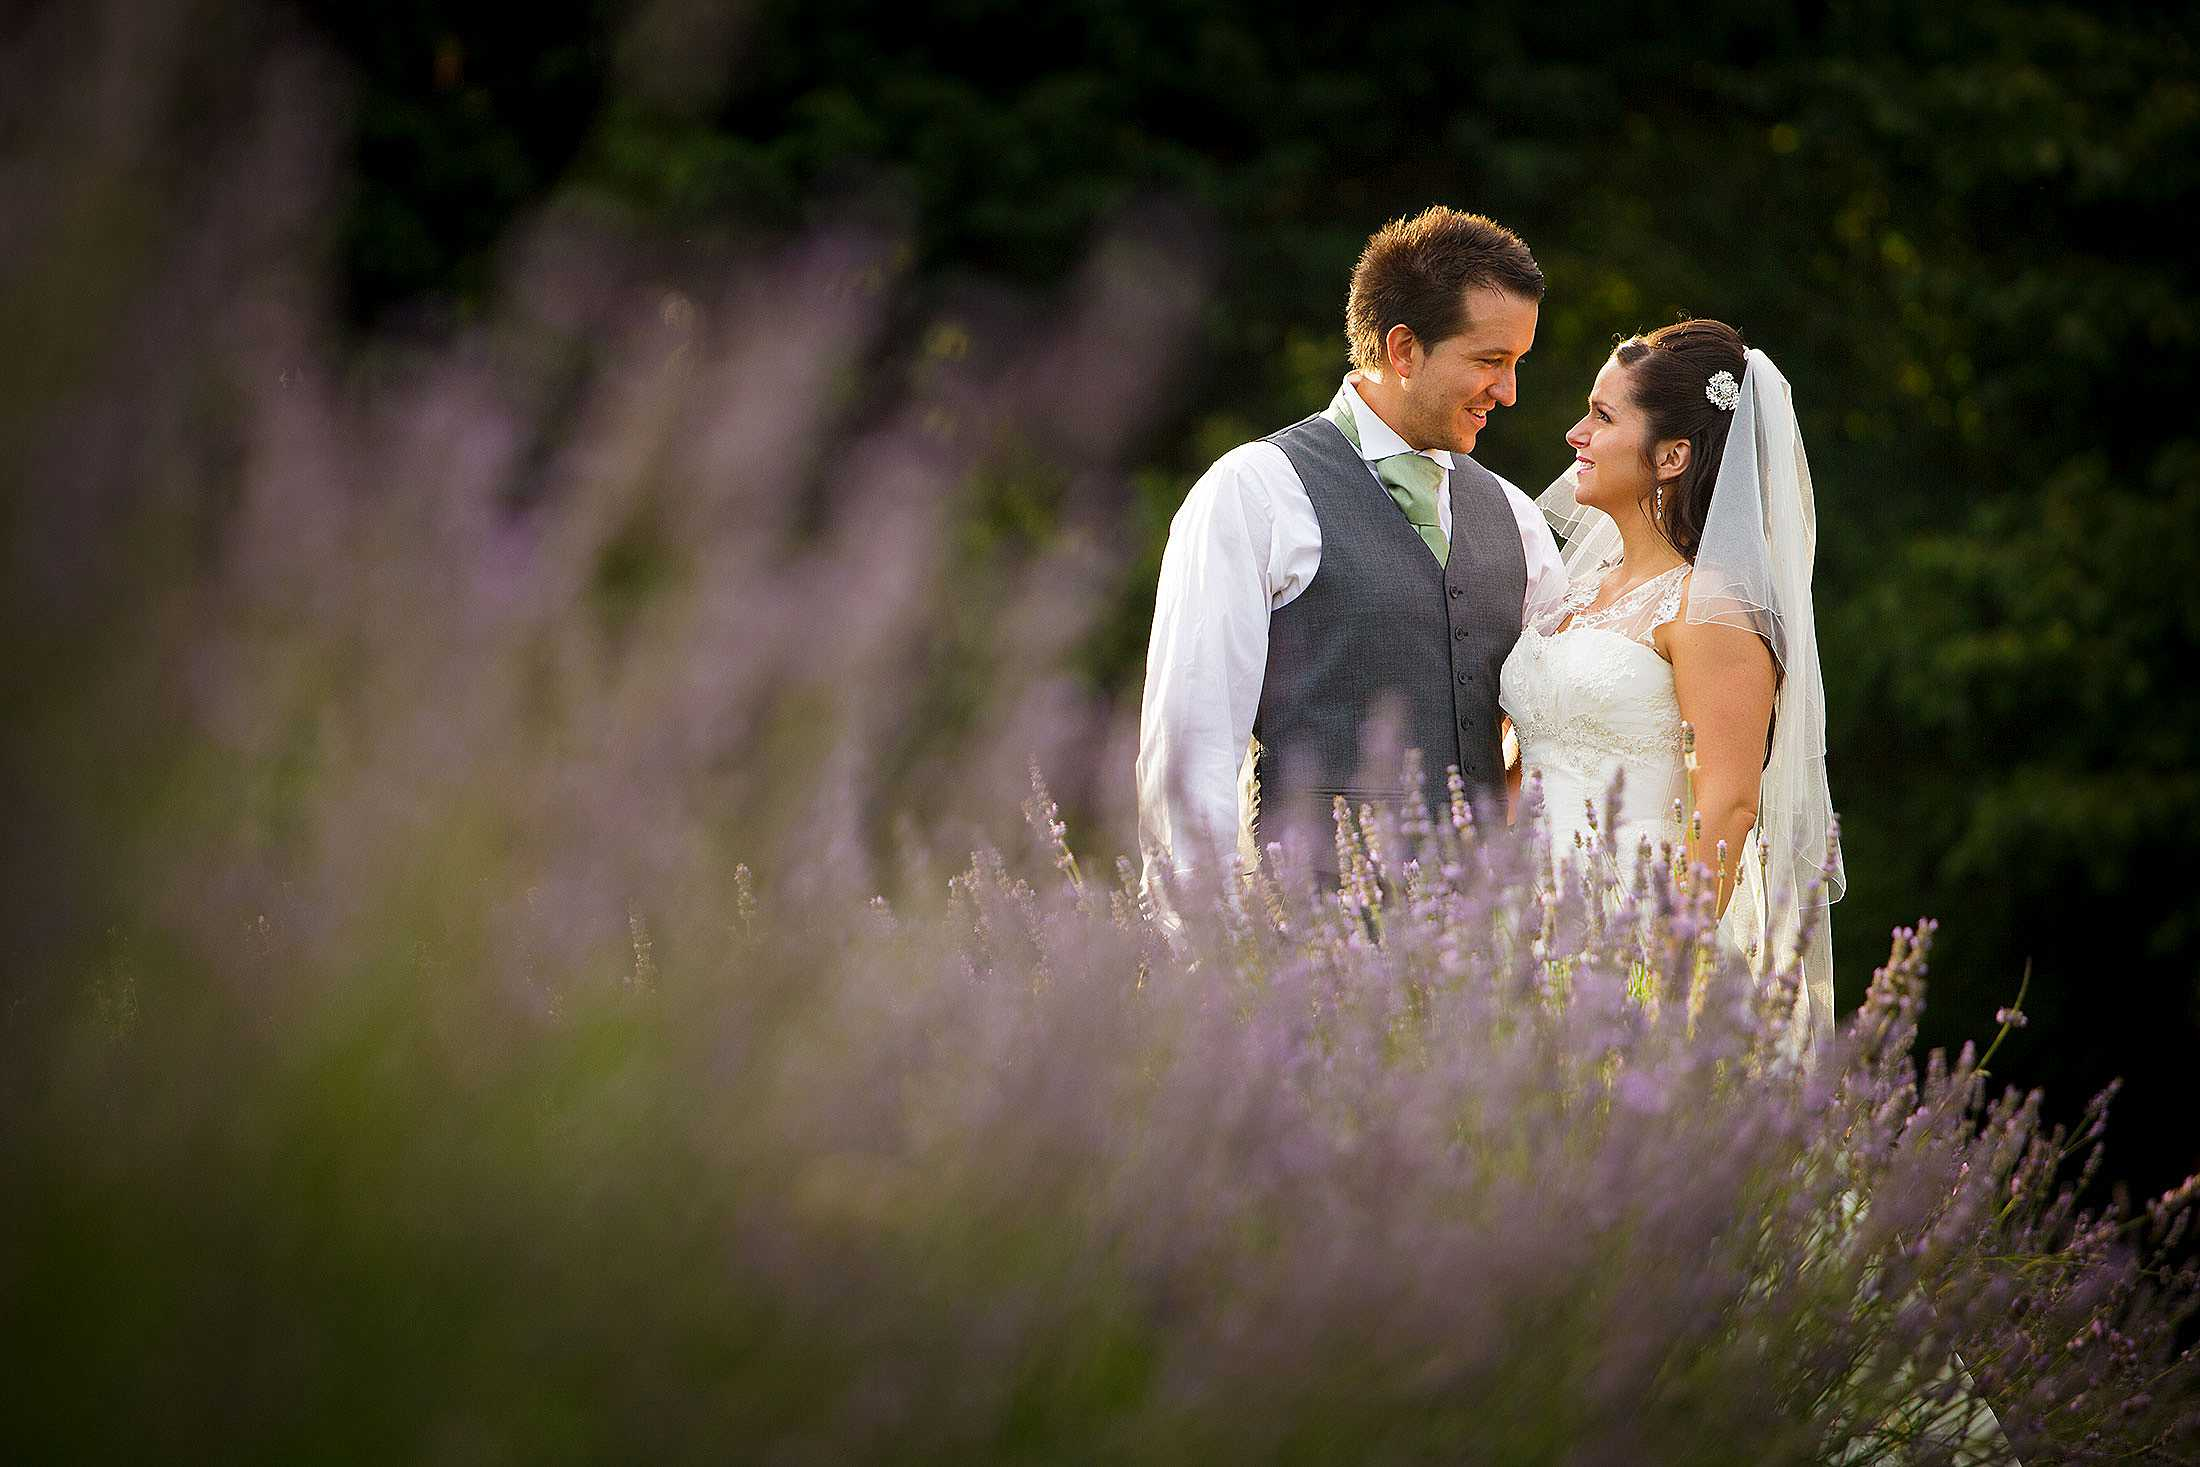 Priory Hall wedding photography of Sophie & James